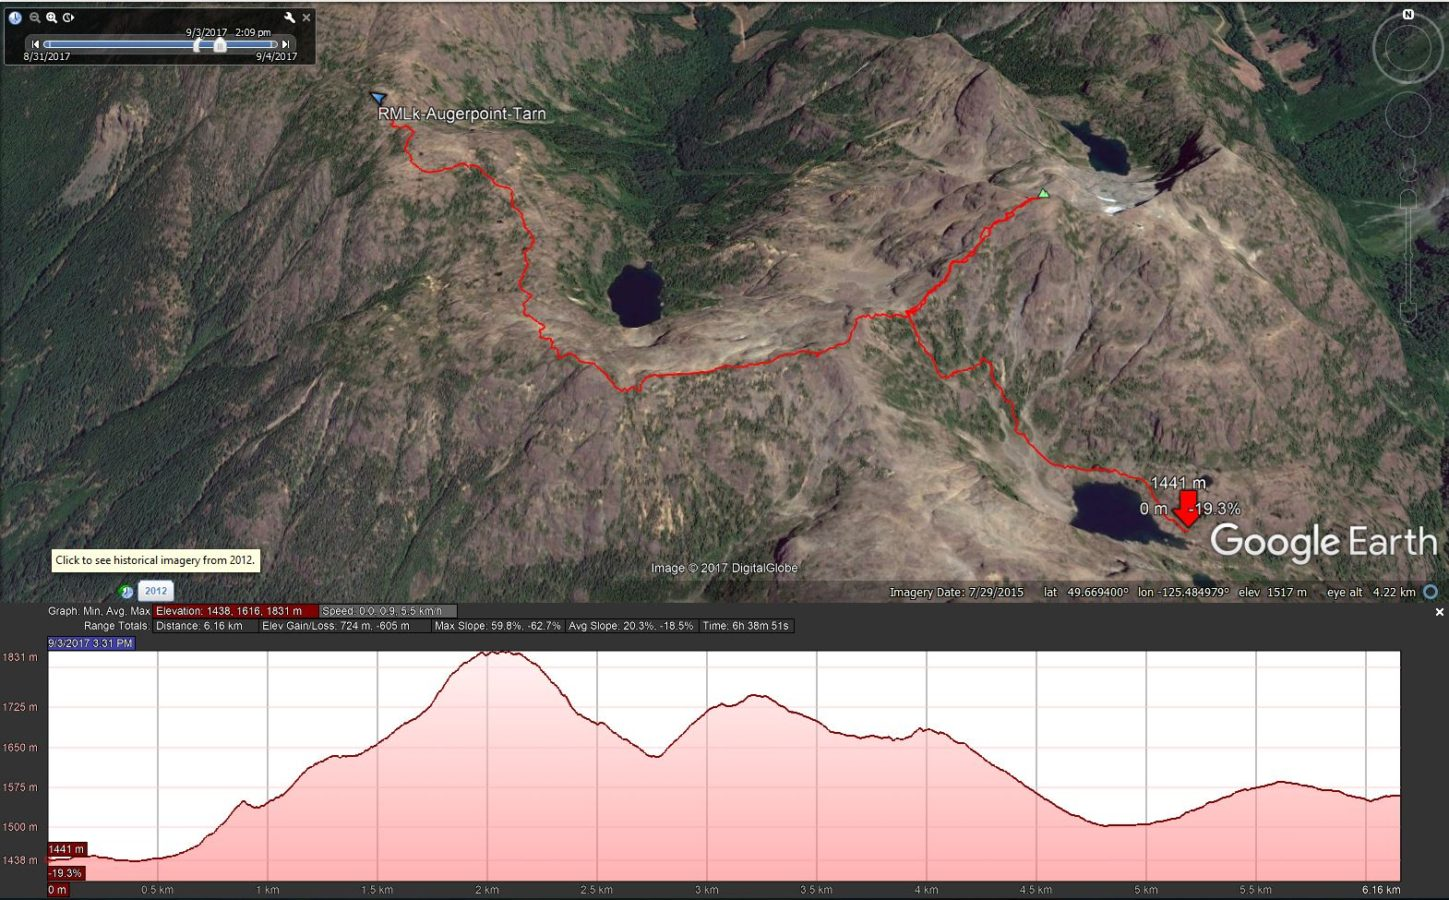 Ruth Masters Lake to Augerpoint Mtn. Summit to Base of NW Peak - Google Earth Track